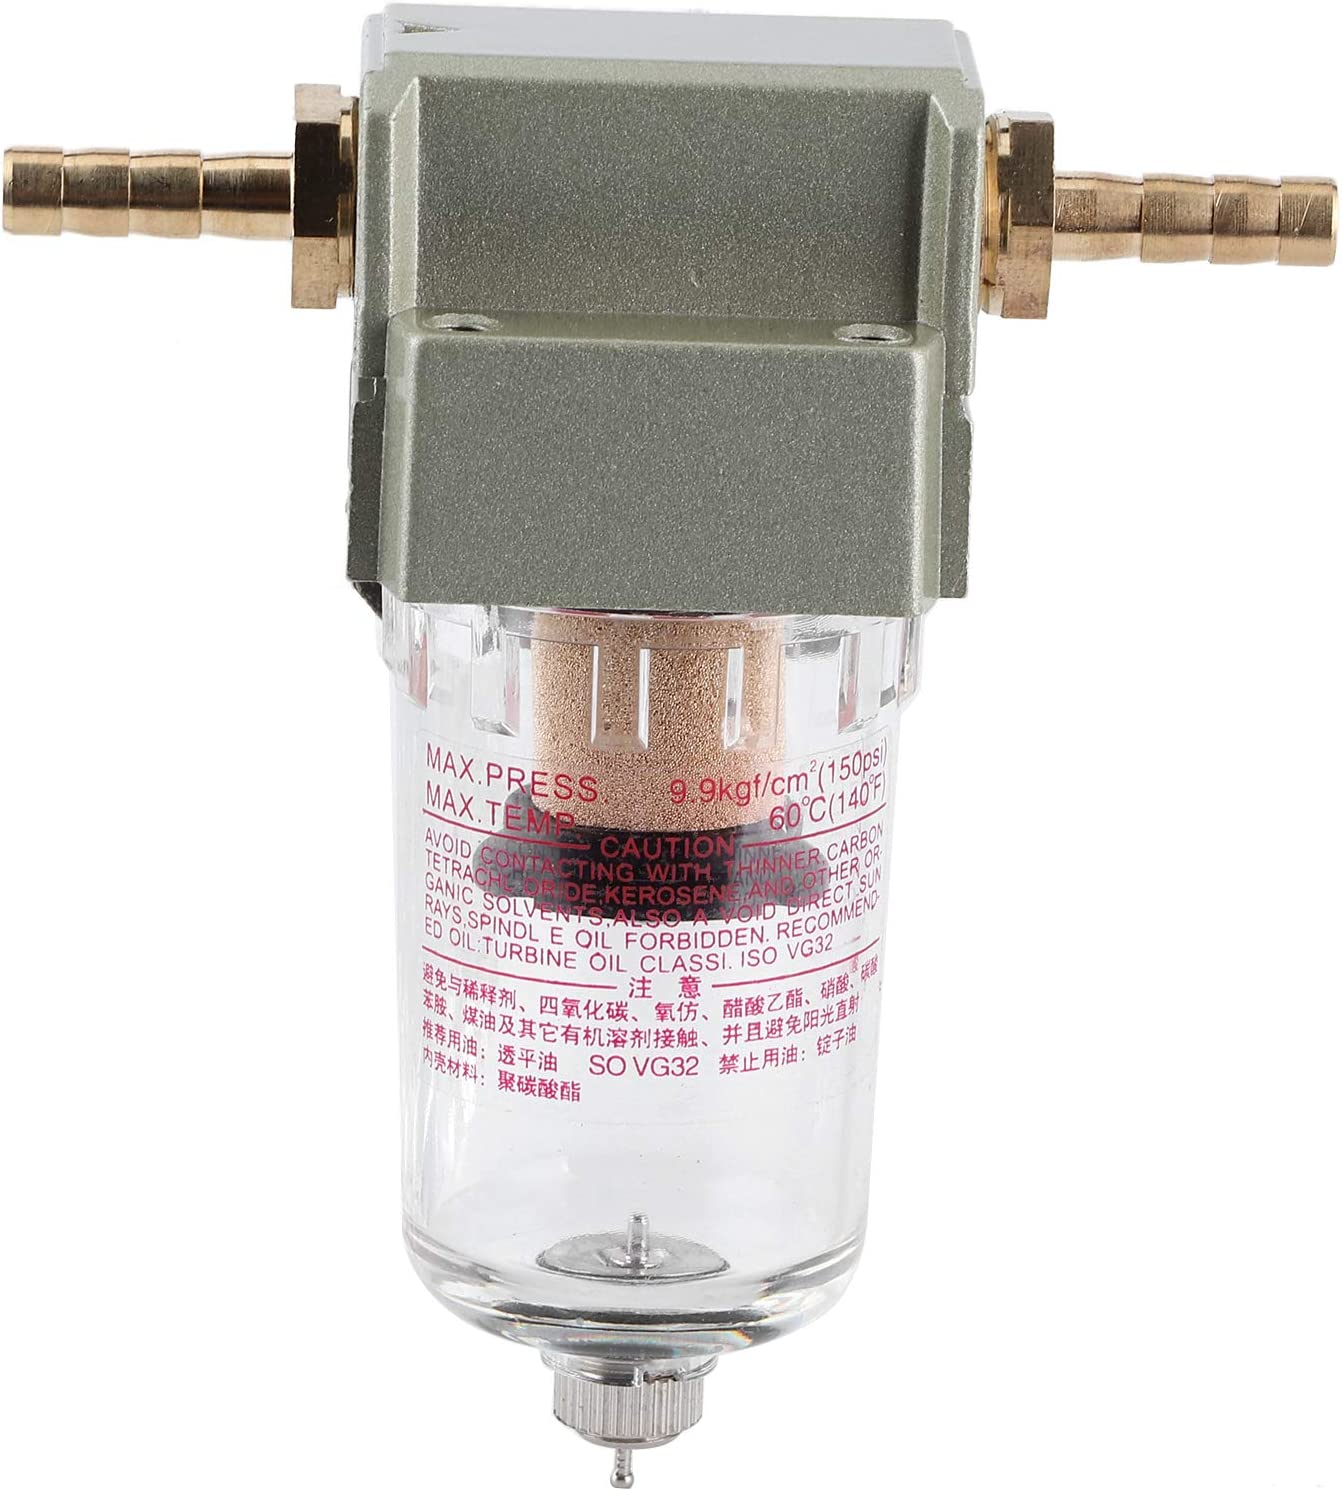 Large discharge sale Durable Replacement Reliable Oil Water for C Car 10mm Max 87% OFF Separator